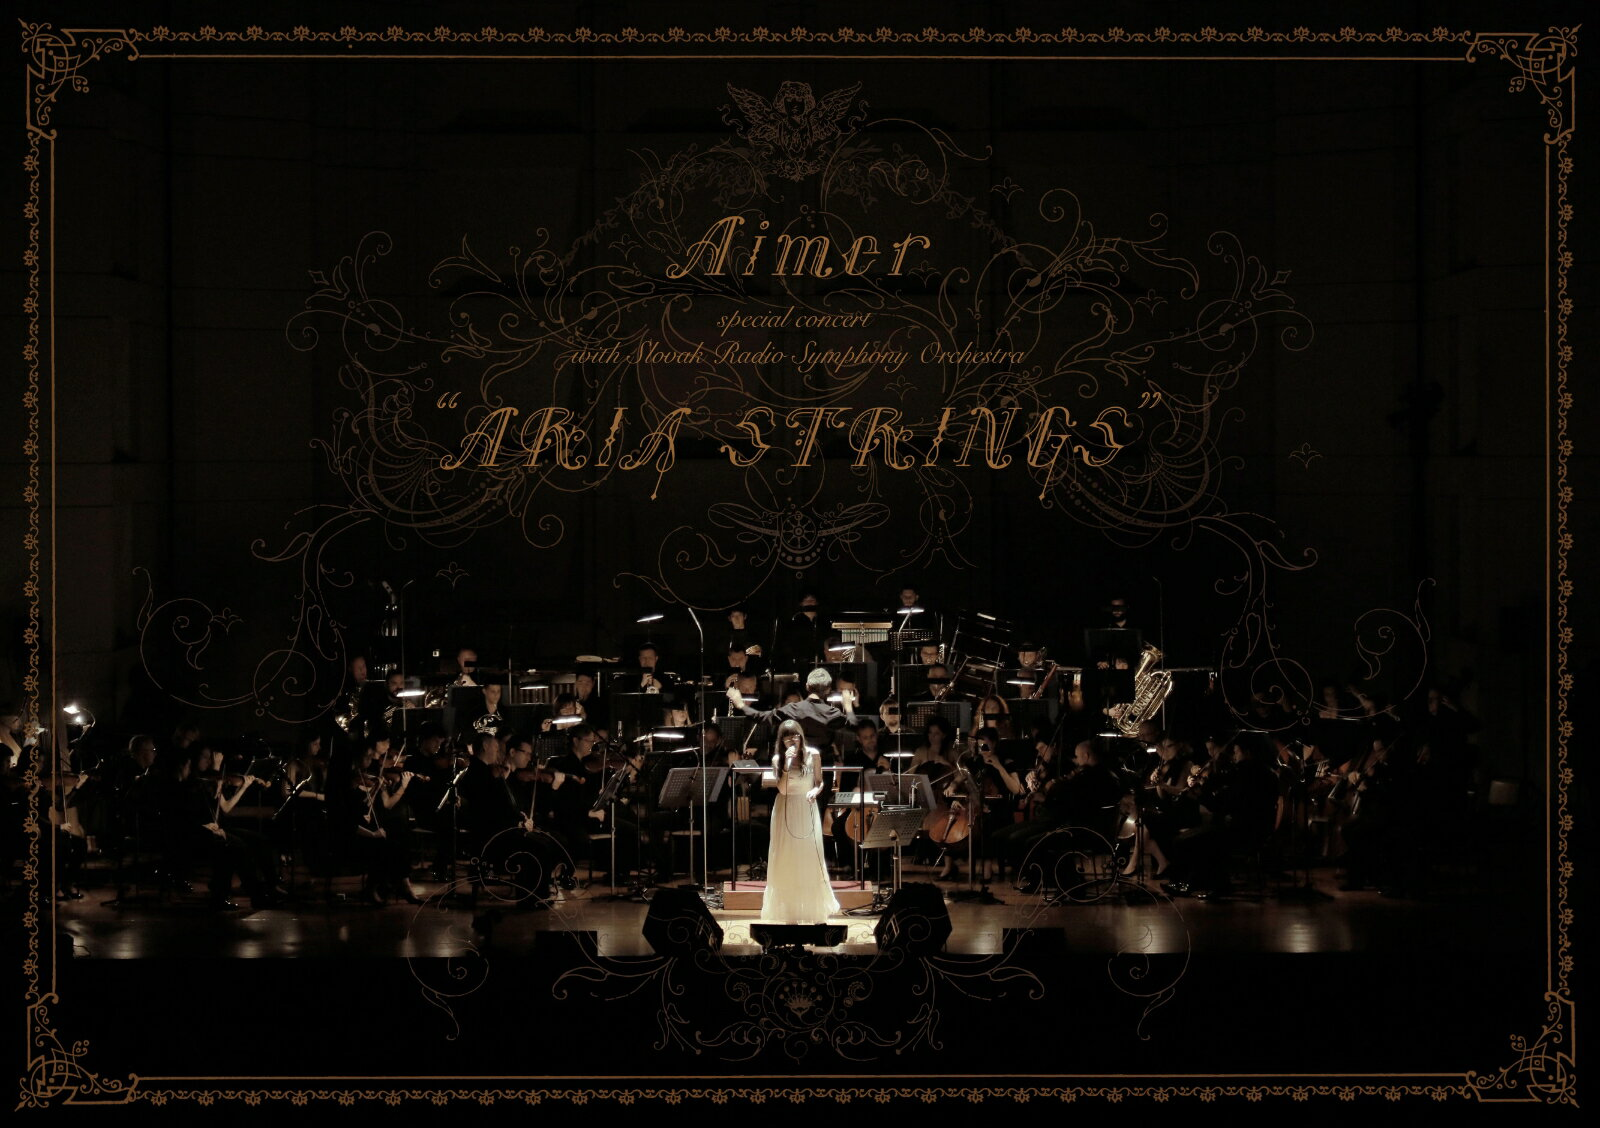 "Aimer special concert with スロヴァキア国立放送交響楽団 ""ARIA STRINGS""(初回生産限定盤)【Blu-ray】画像"